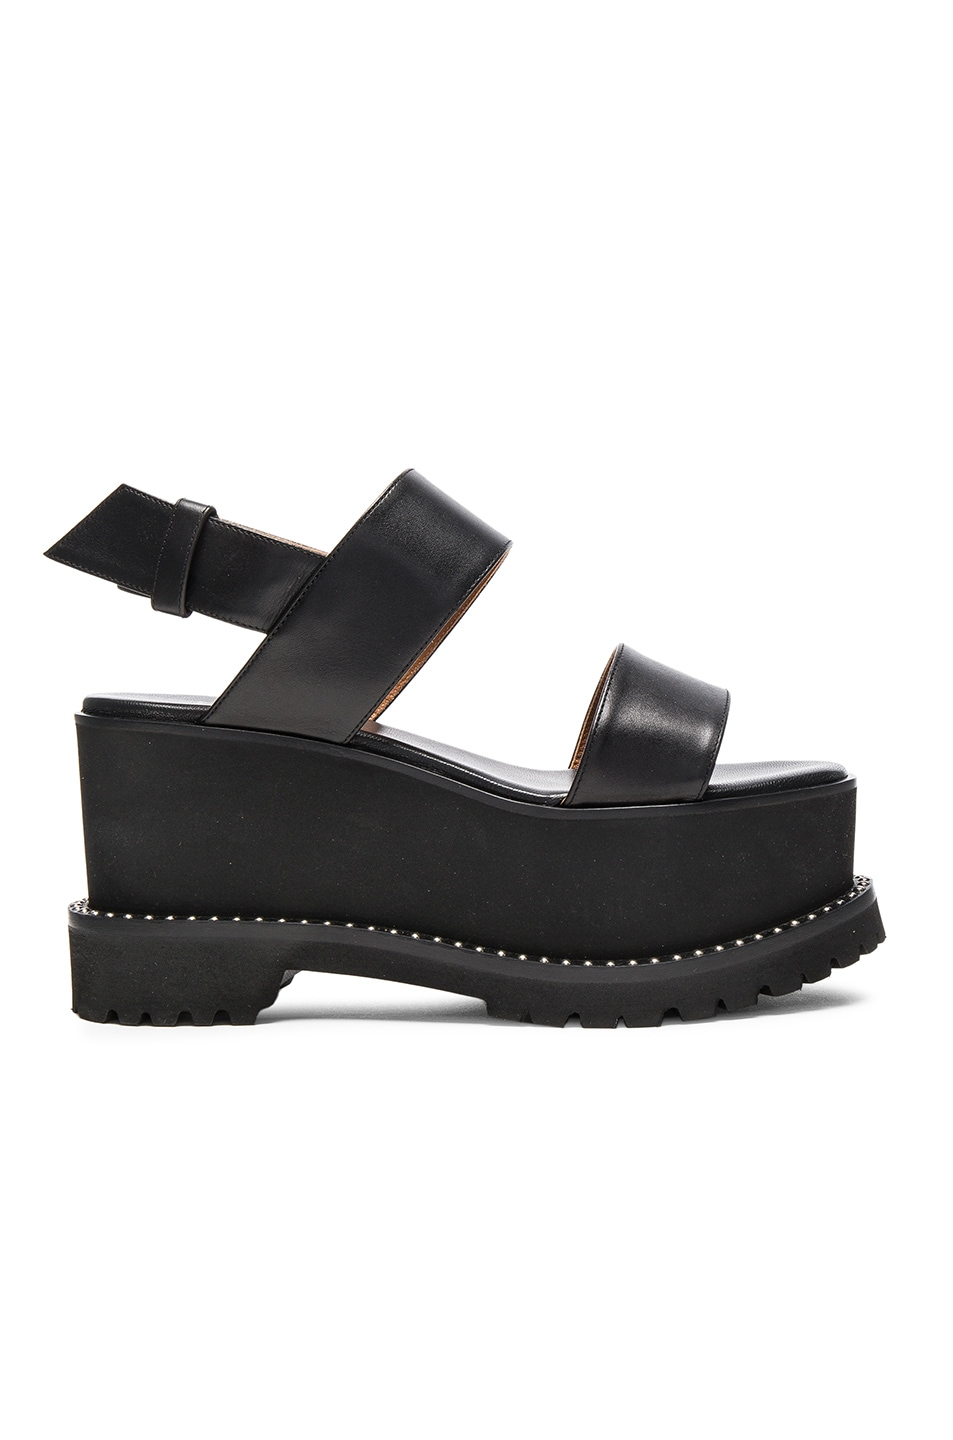 Image 1 of Givenchy Leather Ursa Flatform Sandals in Black